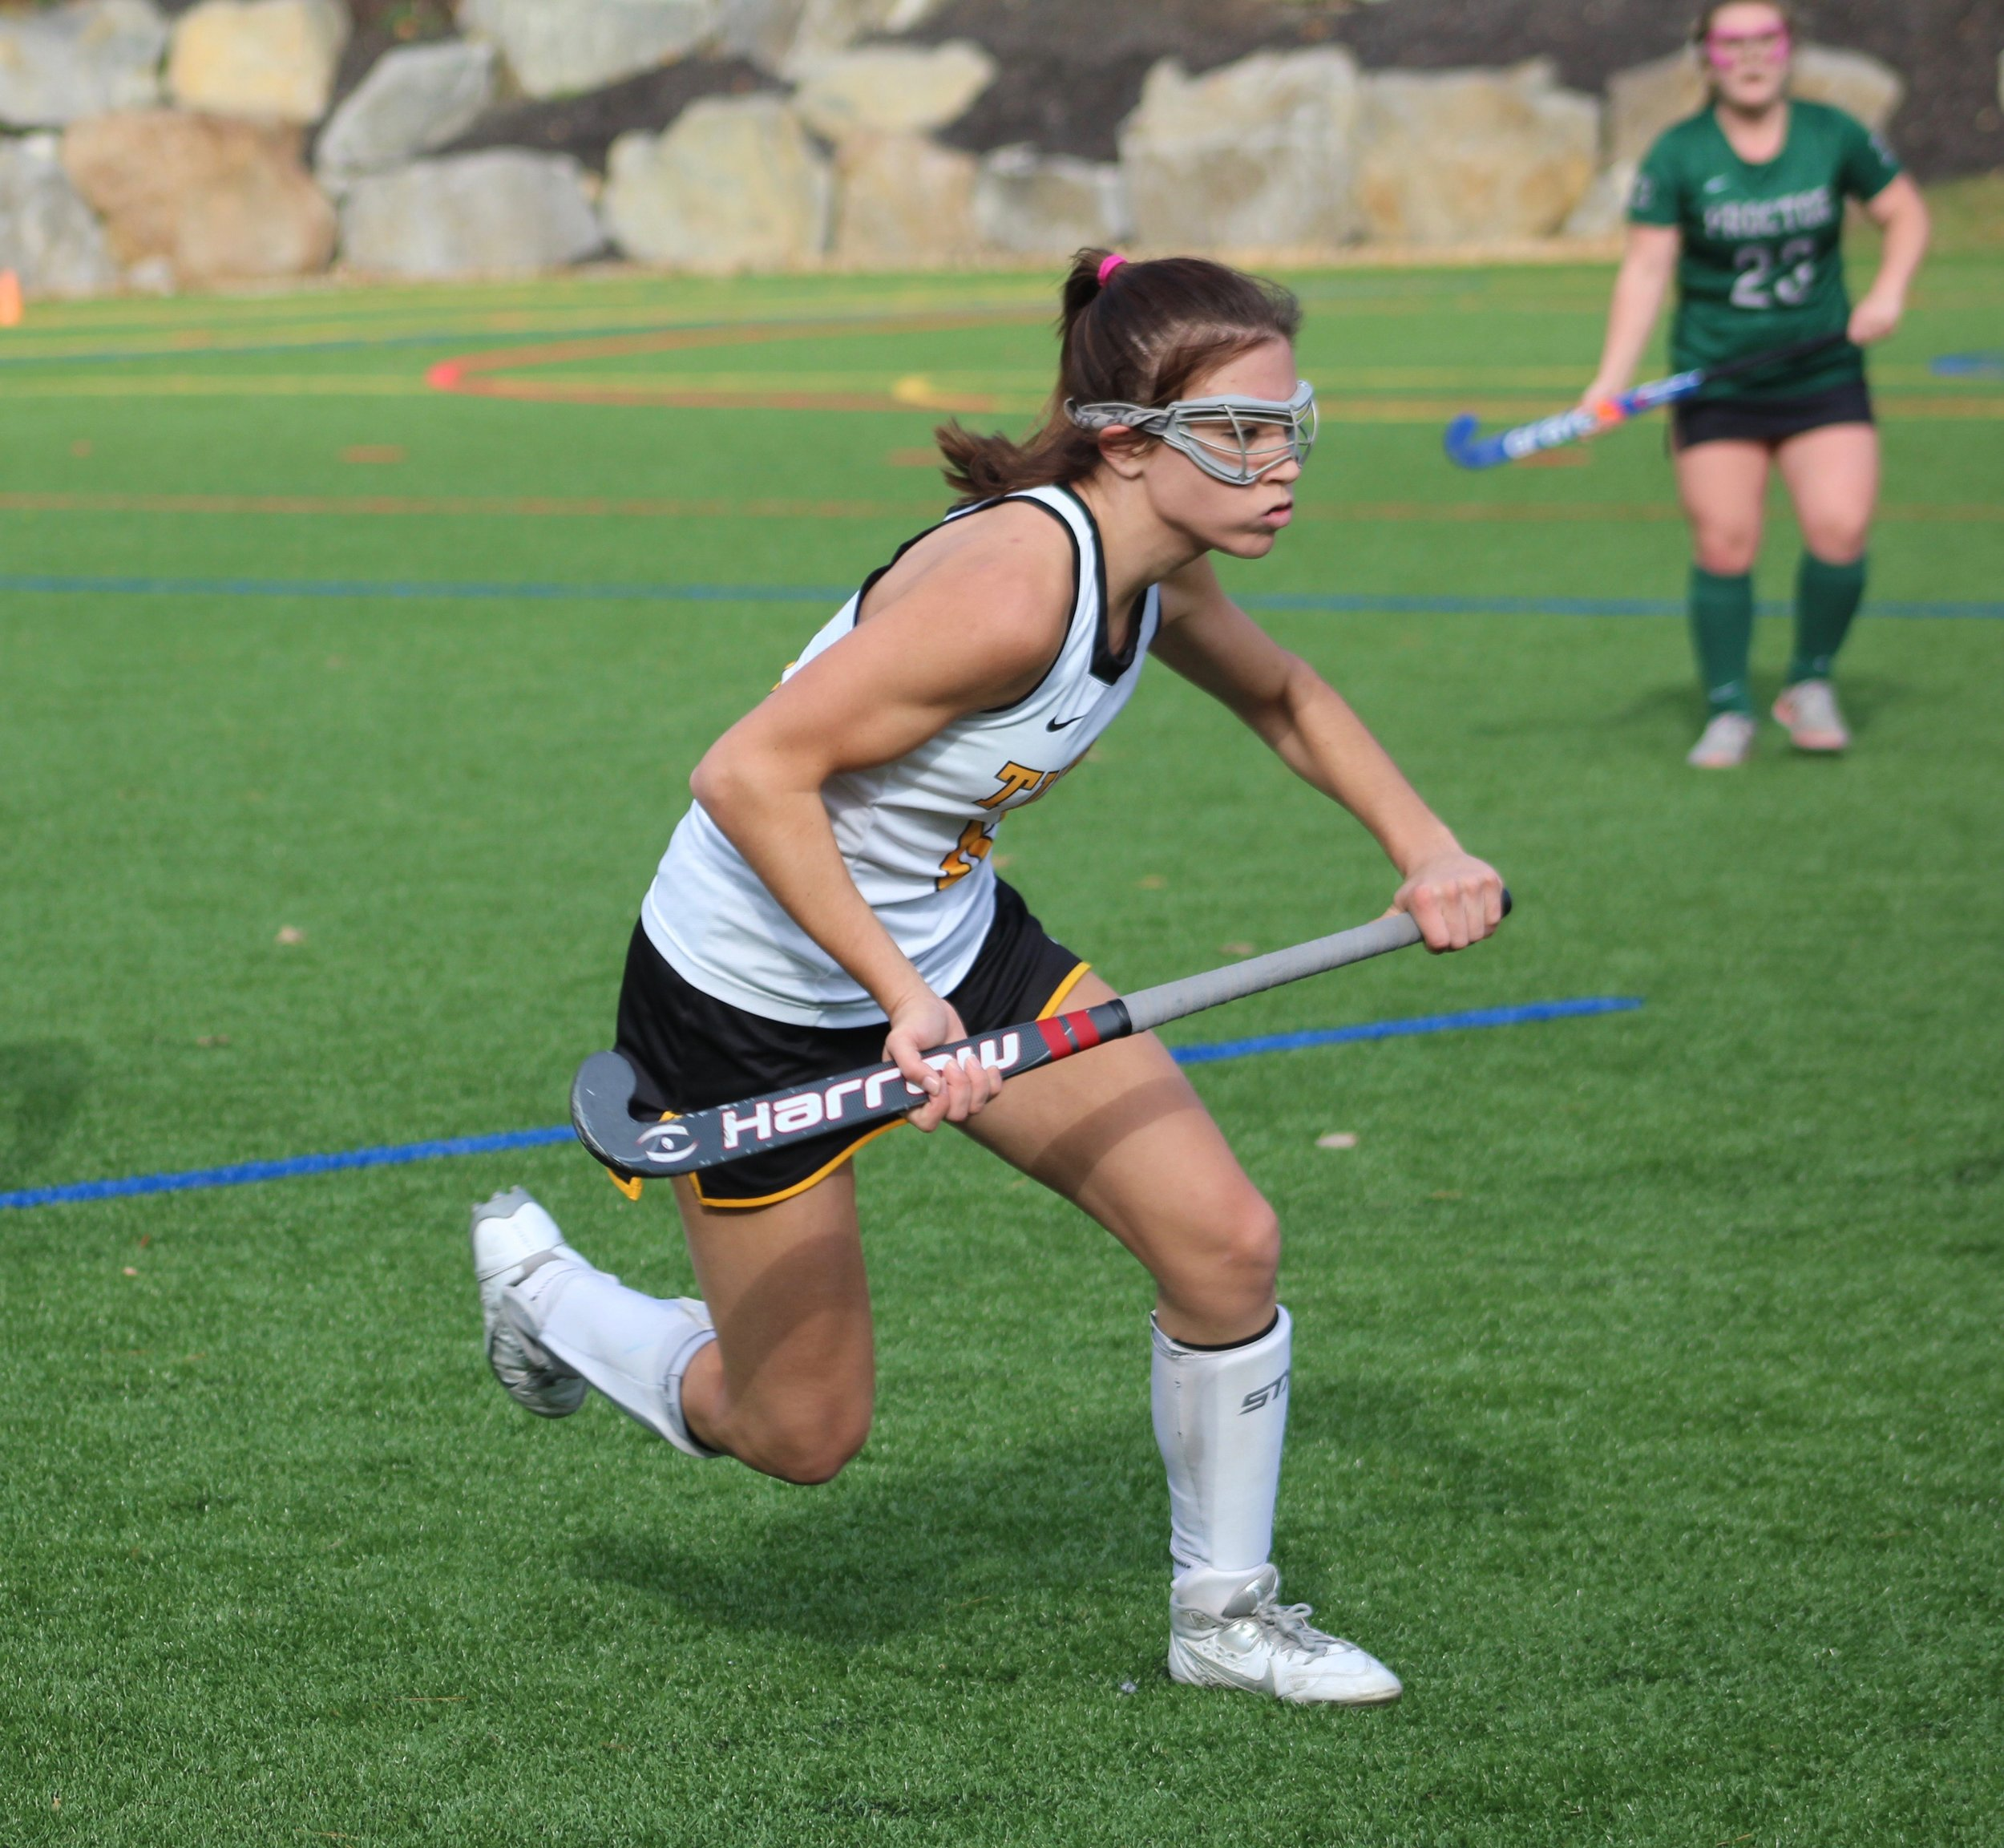 Kaitlin Bardellini - Year of Graduation: 2019High School: TiltonClub:  NoneCollege Commitment: None